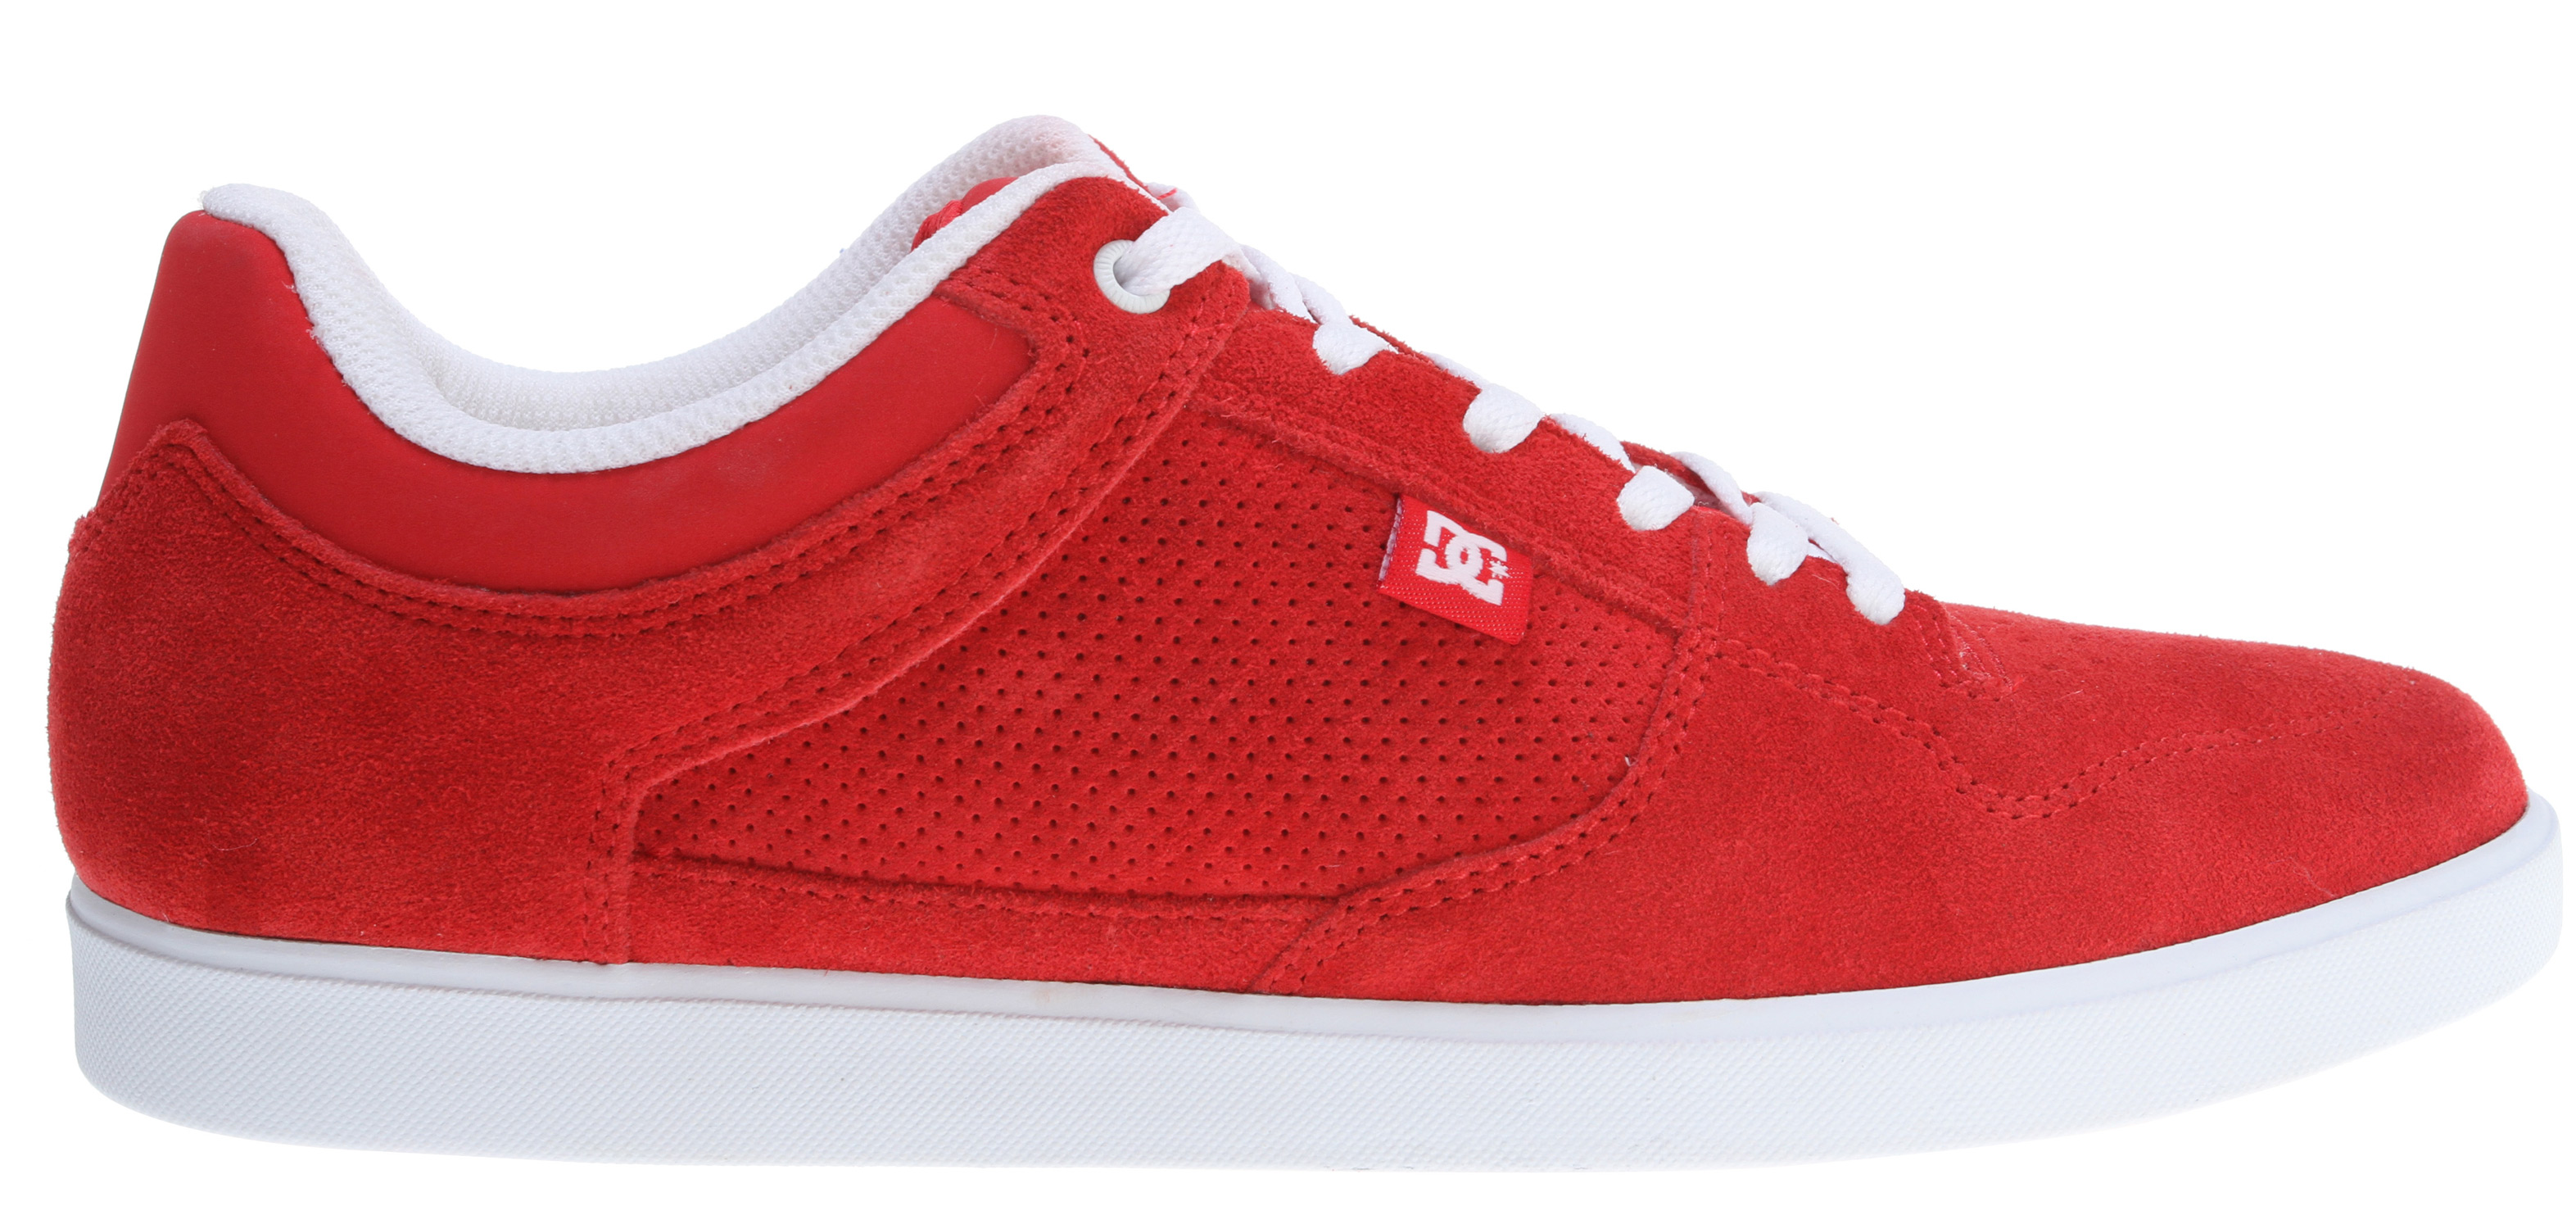 Skateboard The Royal Low isn't a time in a monarchy's history where things got really, really bad. It's a classy skate shoe from the kings and queens at DC Shoes and Your Royal Highness, Rob Dyrdek. - $44.95